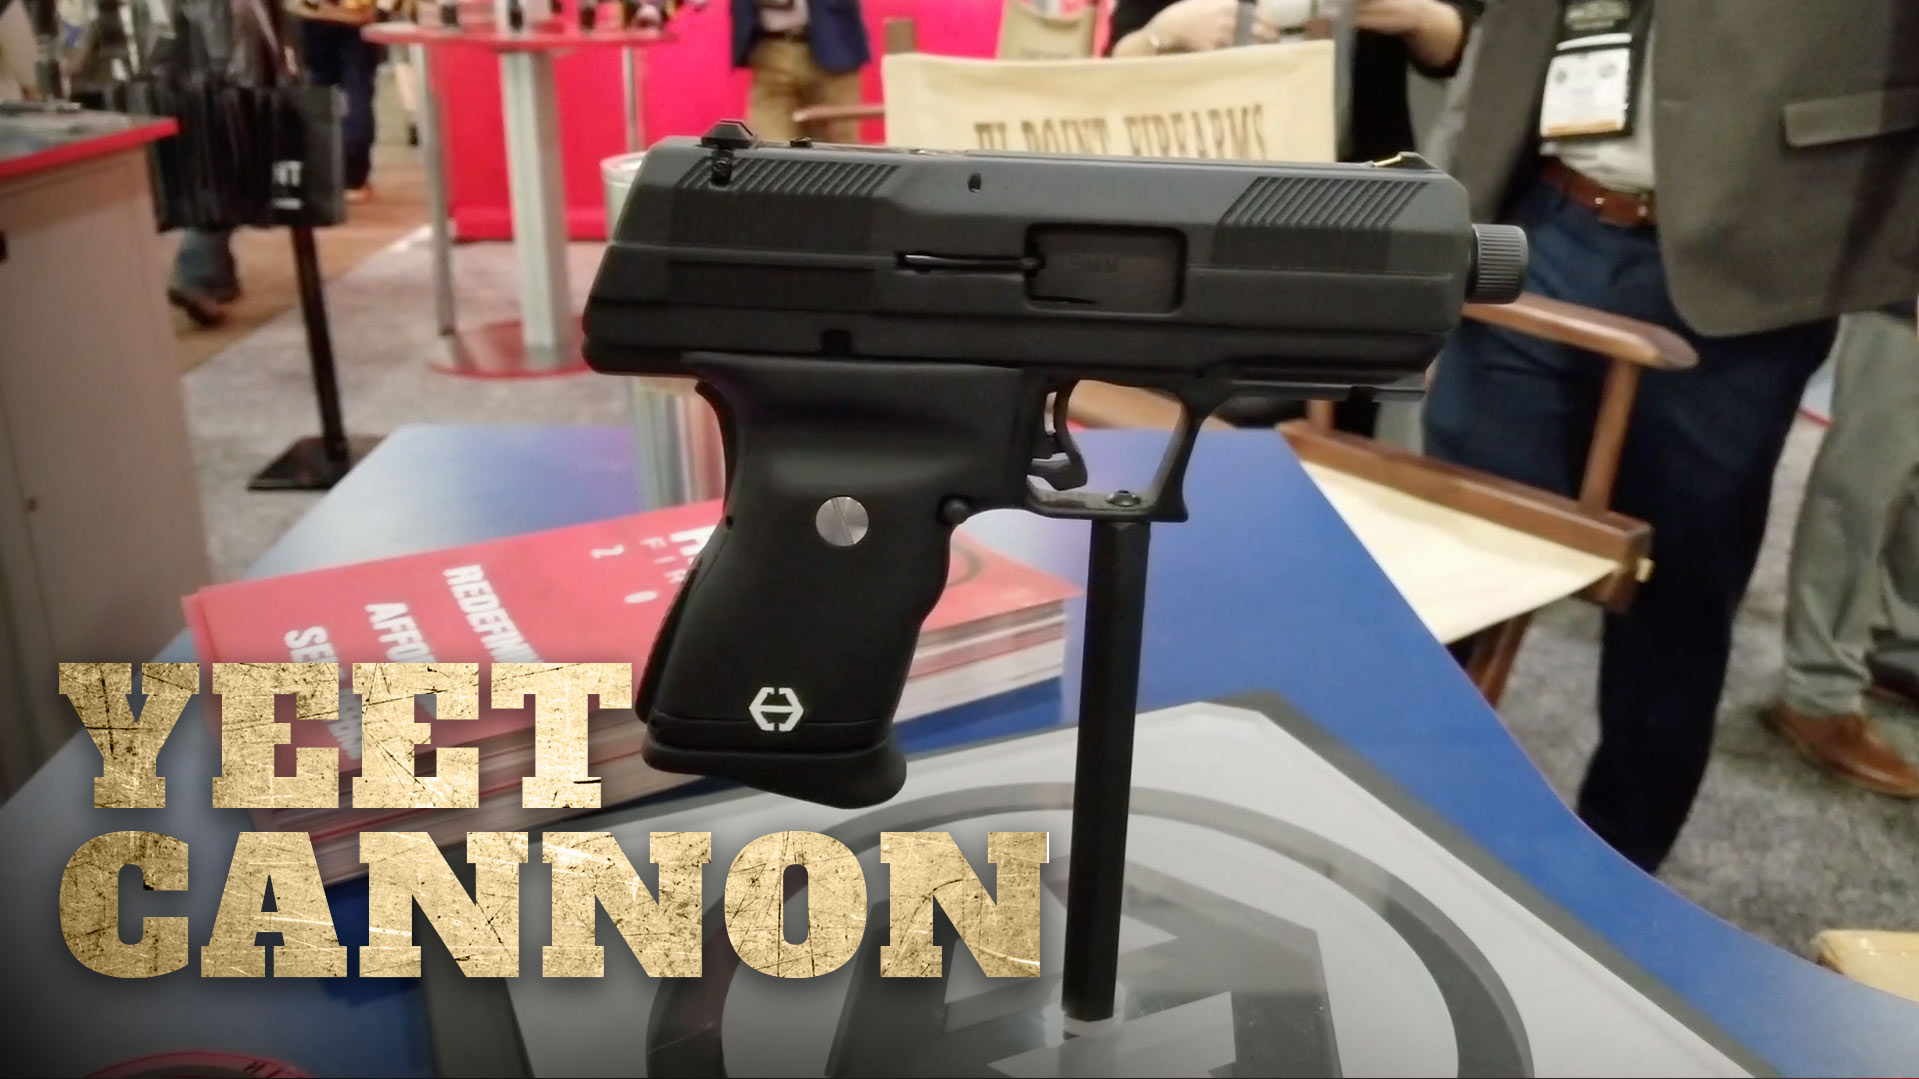 Video Sneak Peak At The Hi Point Yeet Cannon Carbontv Blog